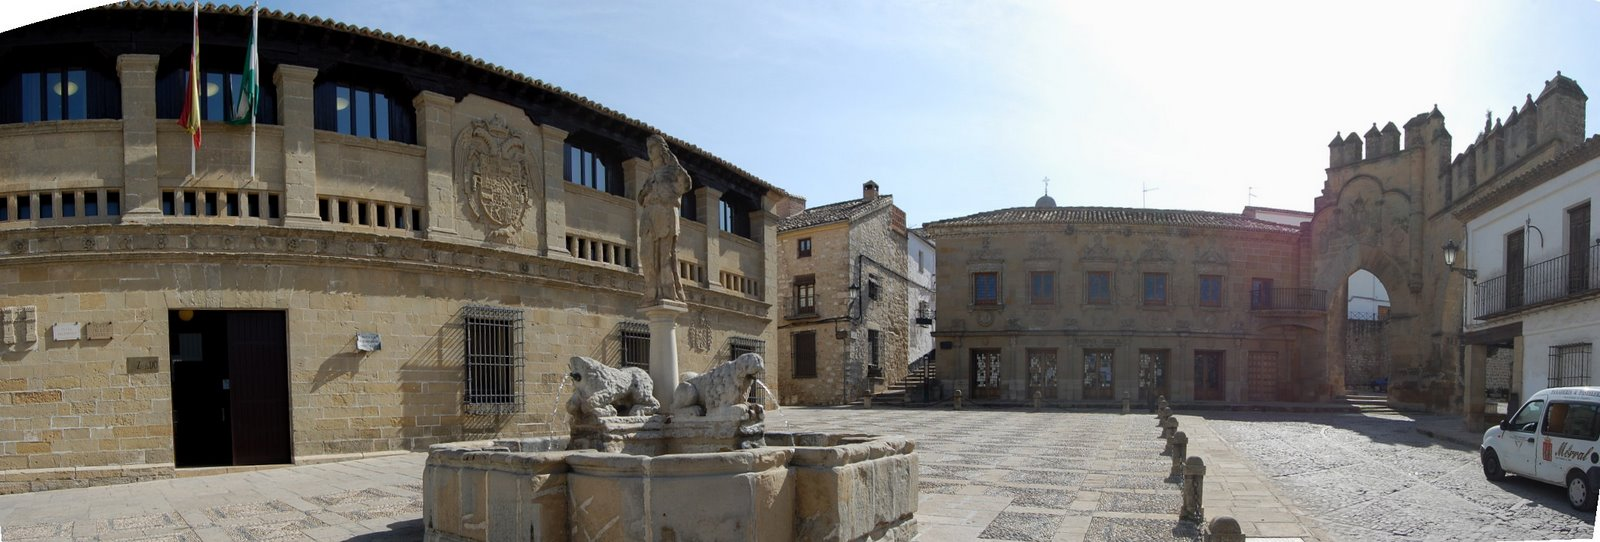 Baeza Spain  city pictures gallery : Baeza Plaza del Populo